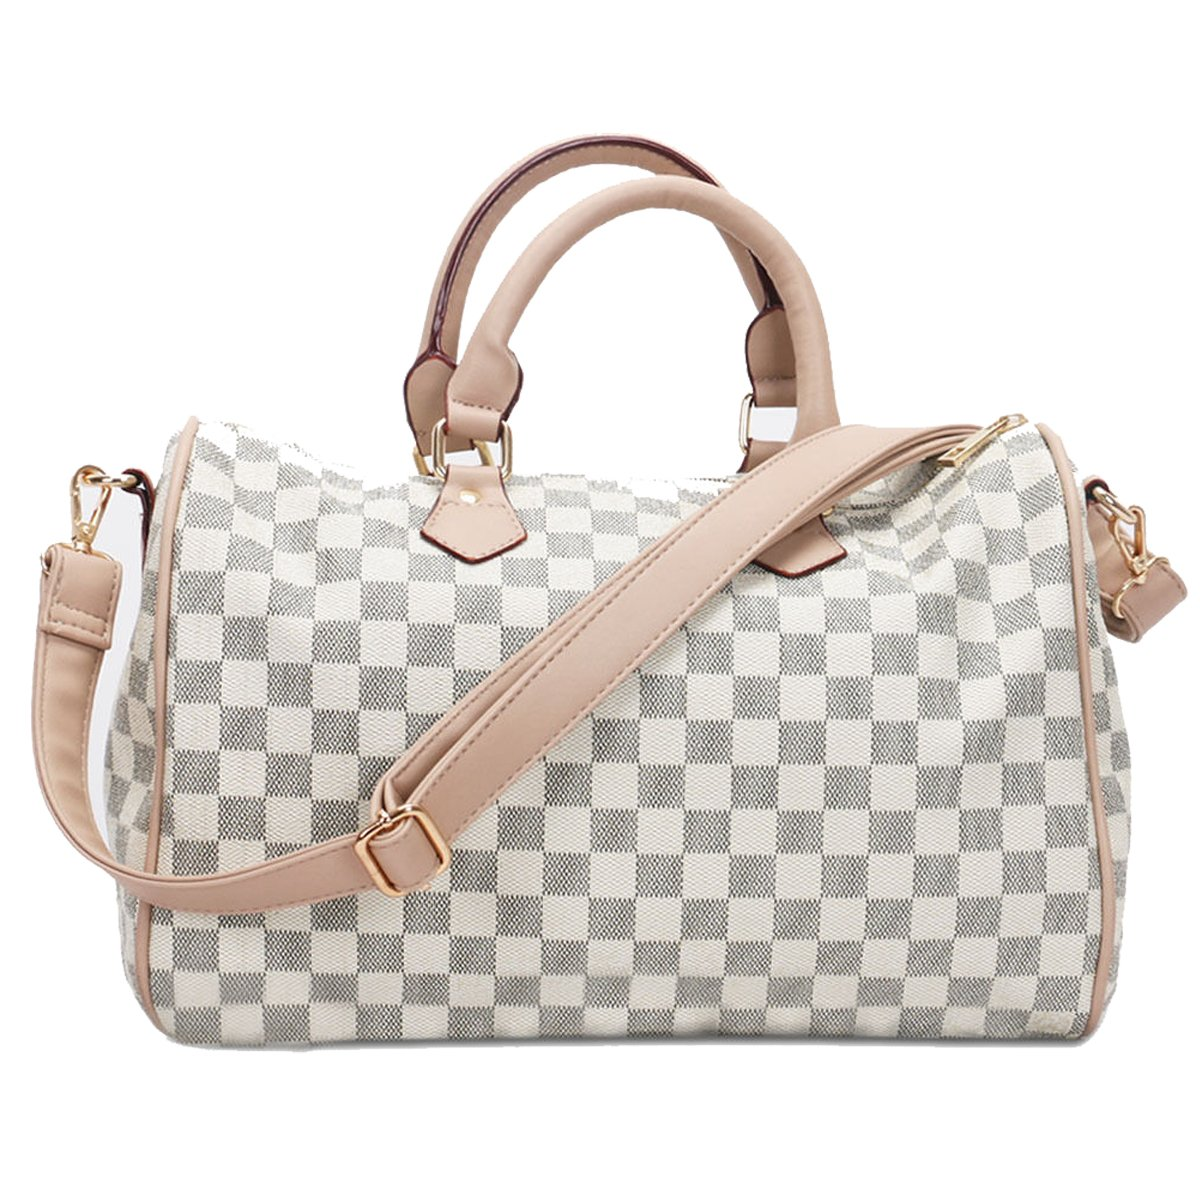 98dfb5680a Fashion Bazaar Designer Style Check Shoulder Bags - Faux Leather Tote -  Barrel Style Gym Weekend Duffel Travel Bag - Checked Handbag with Coin Purse  (Barrel ...